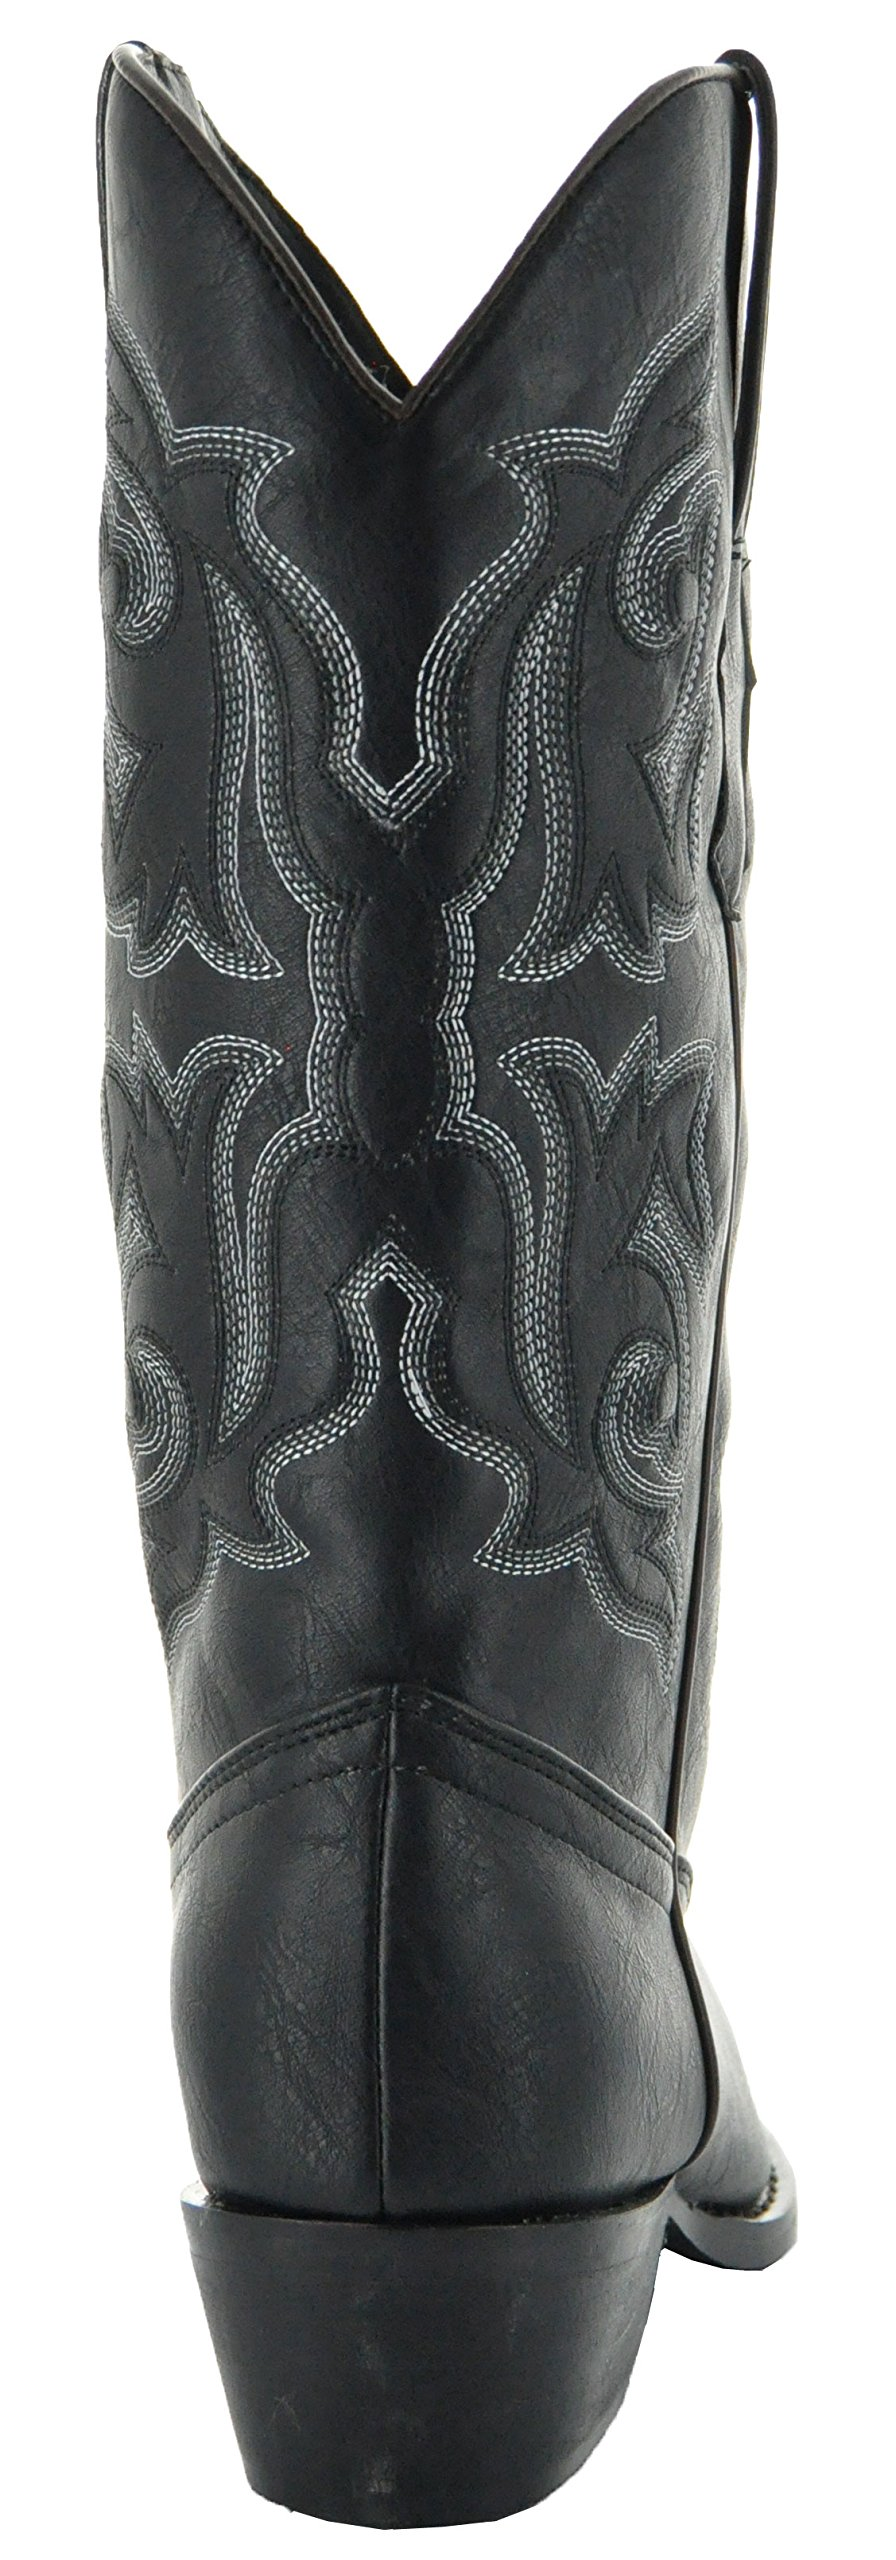 Country Love Pointed Toe Women's Cowboy Boots W101-1001 (7, Black) by Country Love Boots (Image #5)